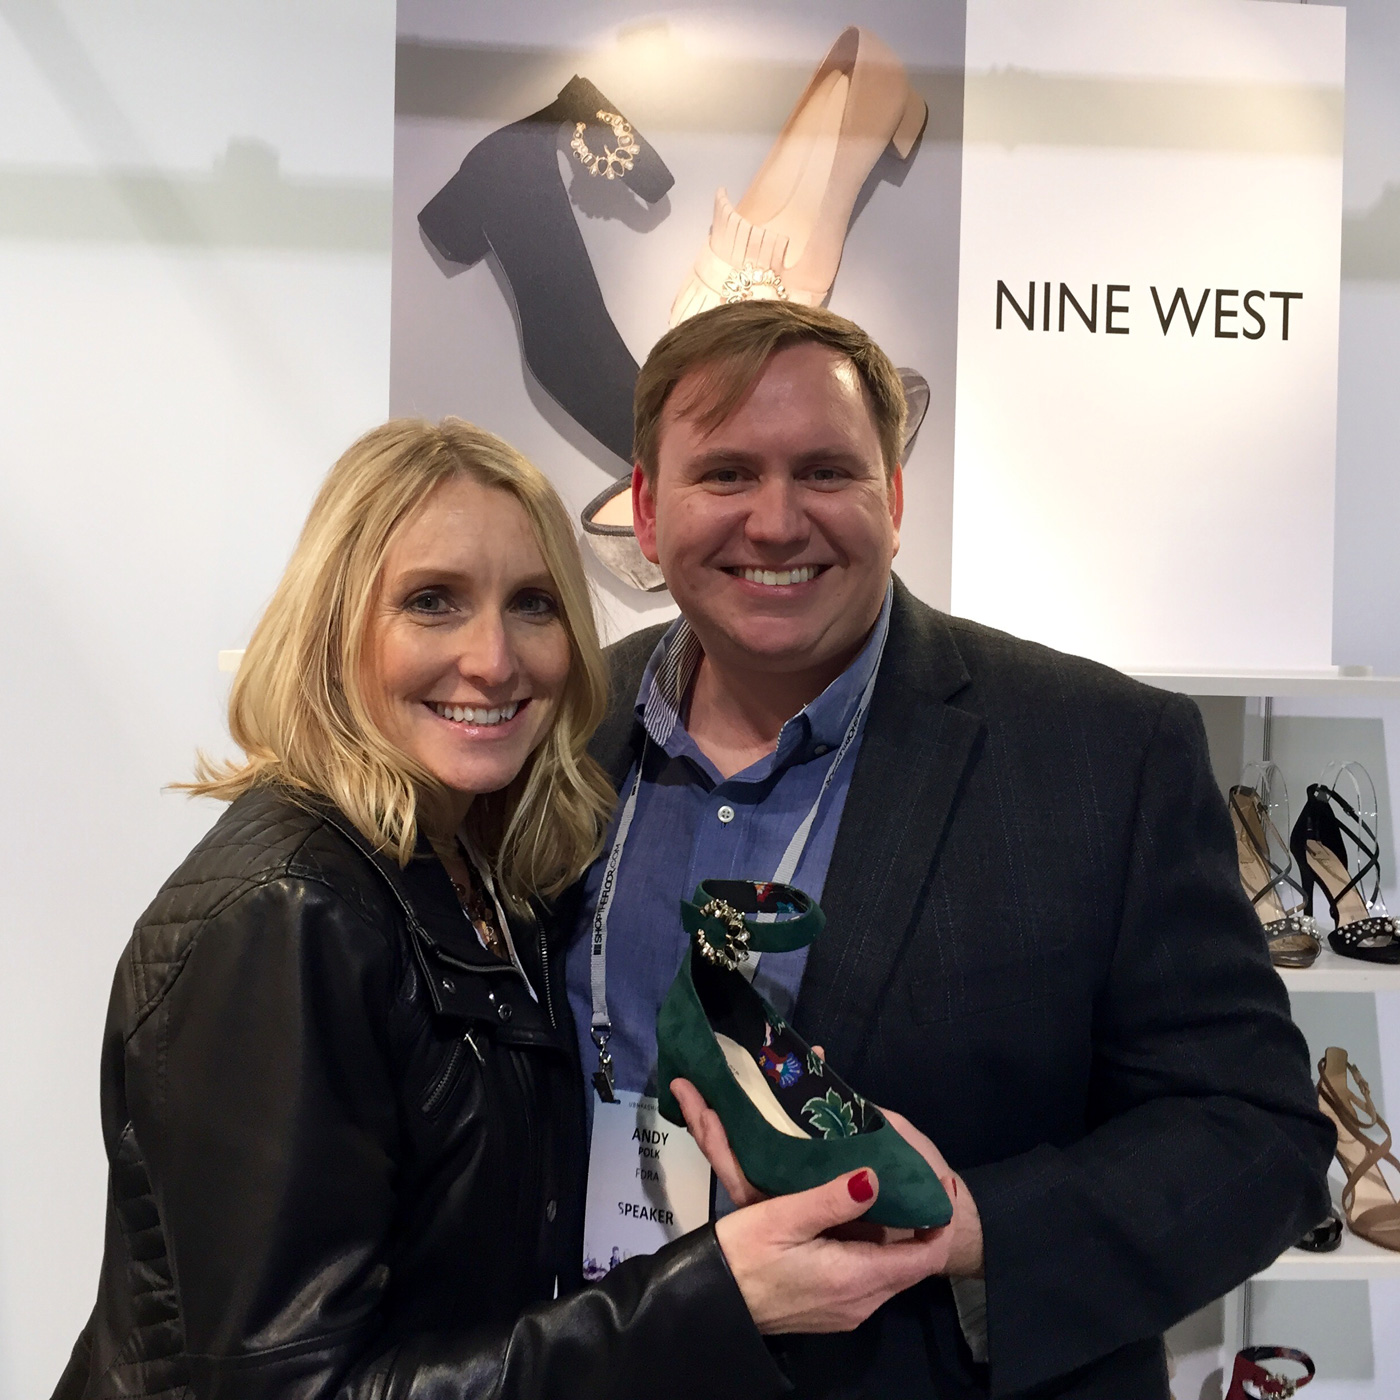 Noelle Frye, Vice President of Sales, Nine West